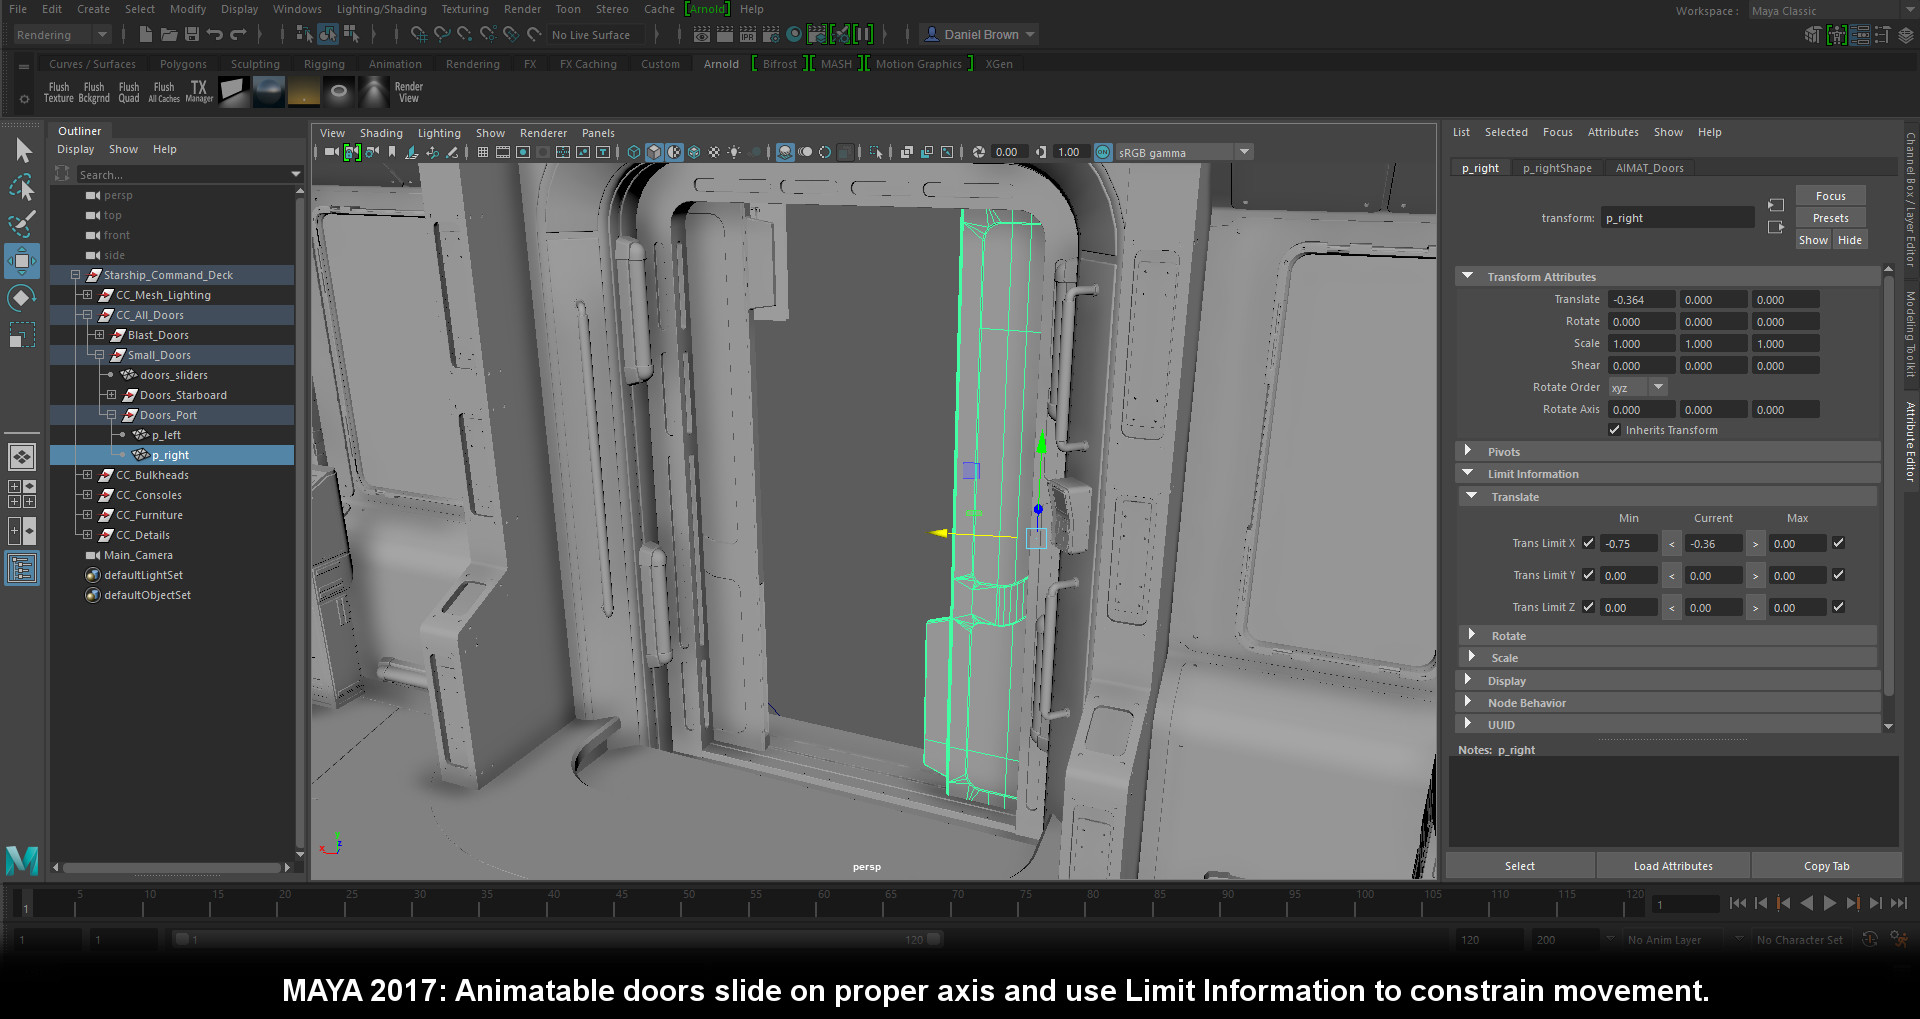 Maya 2017 version constraints for animating the small doors